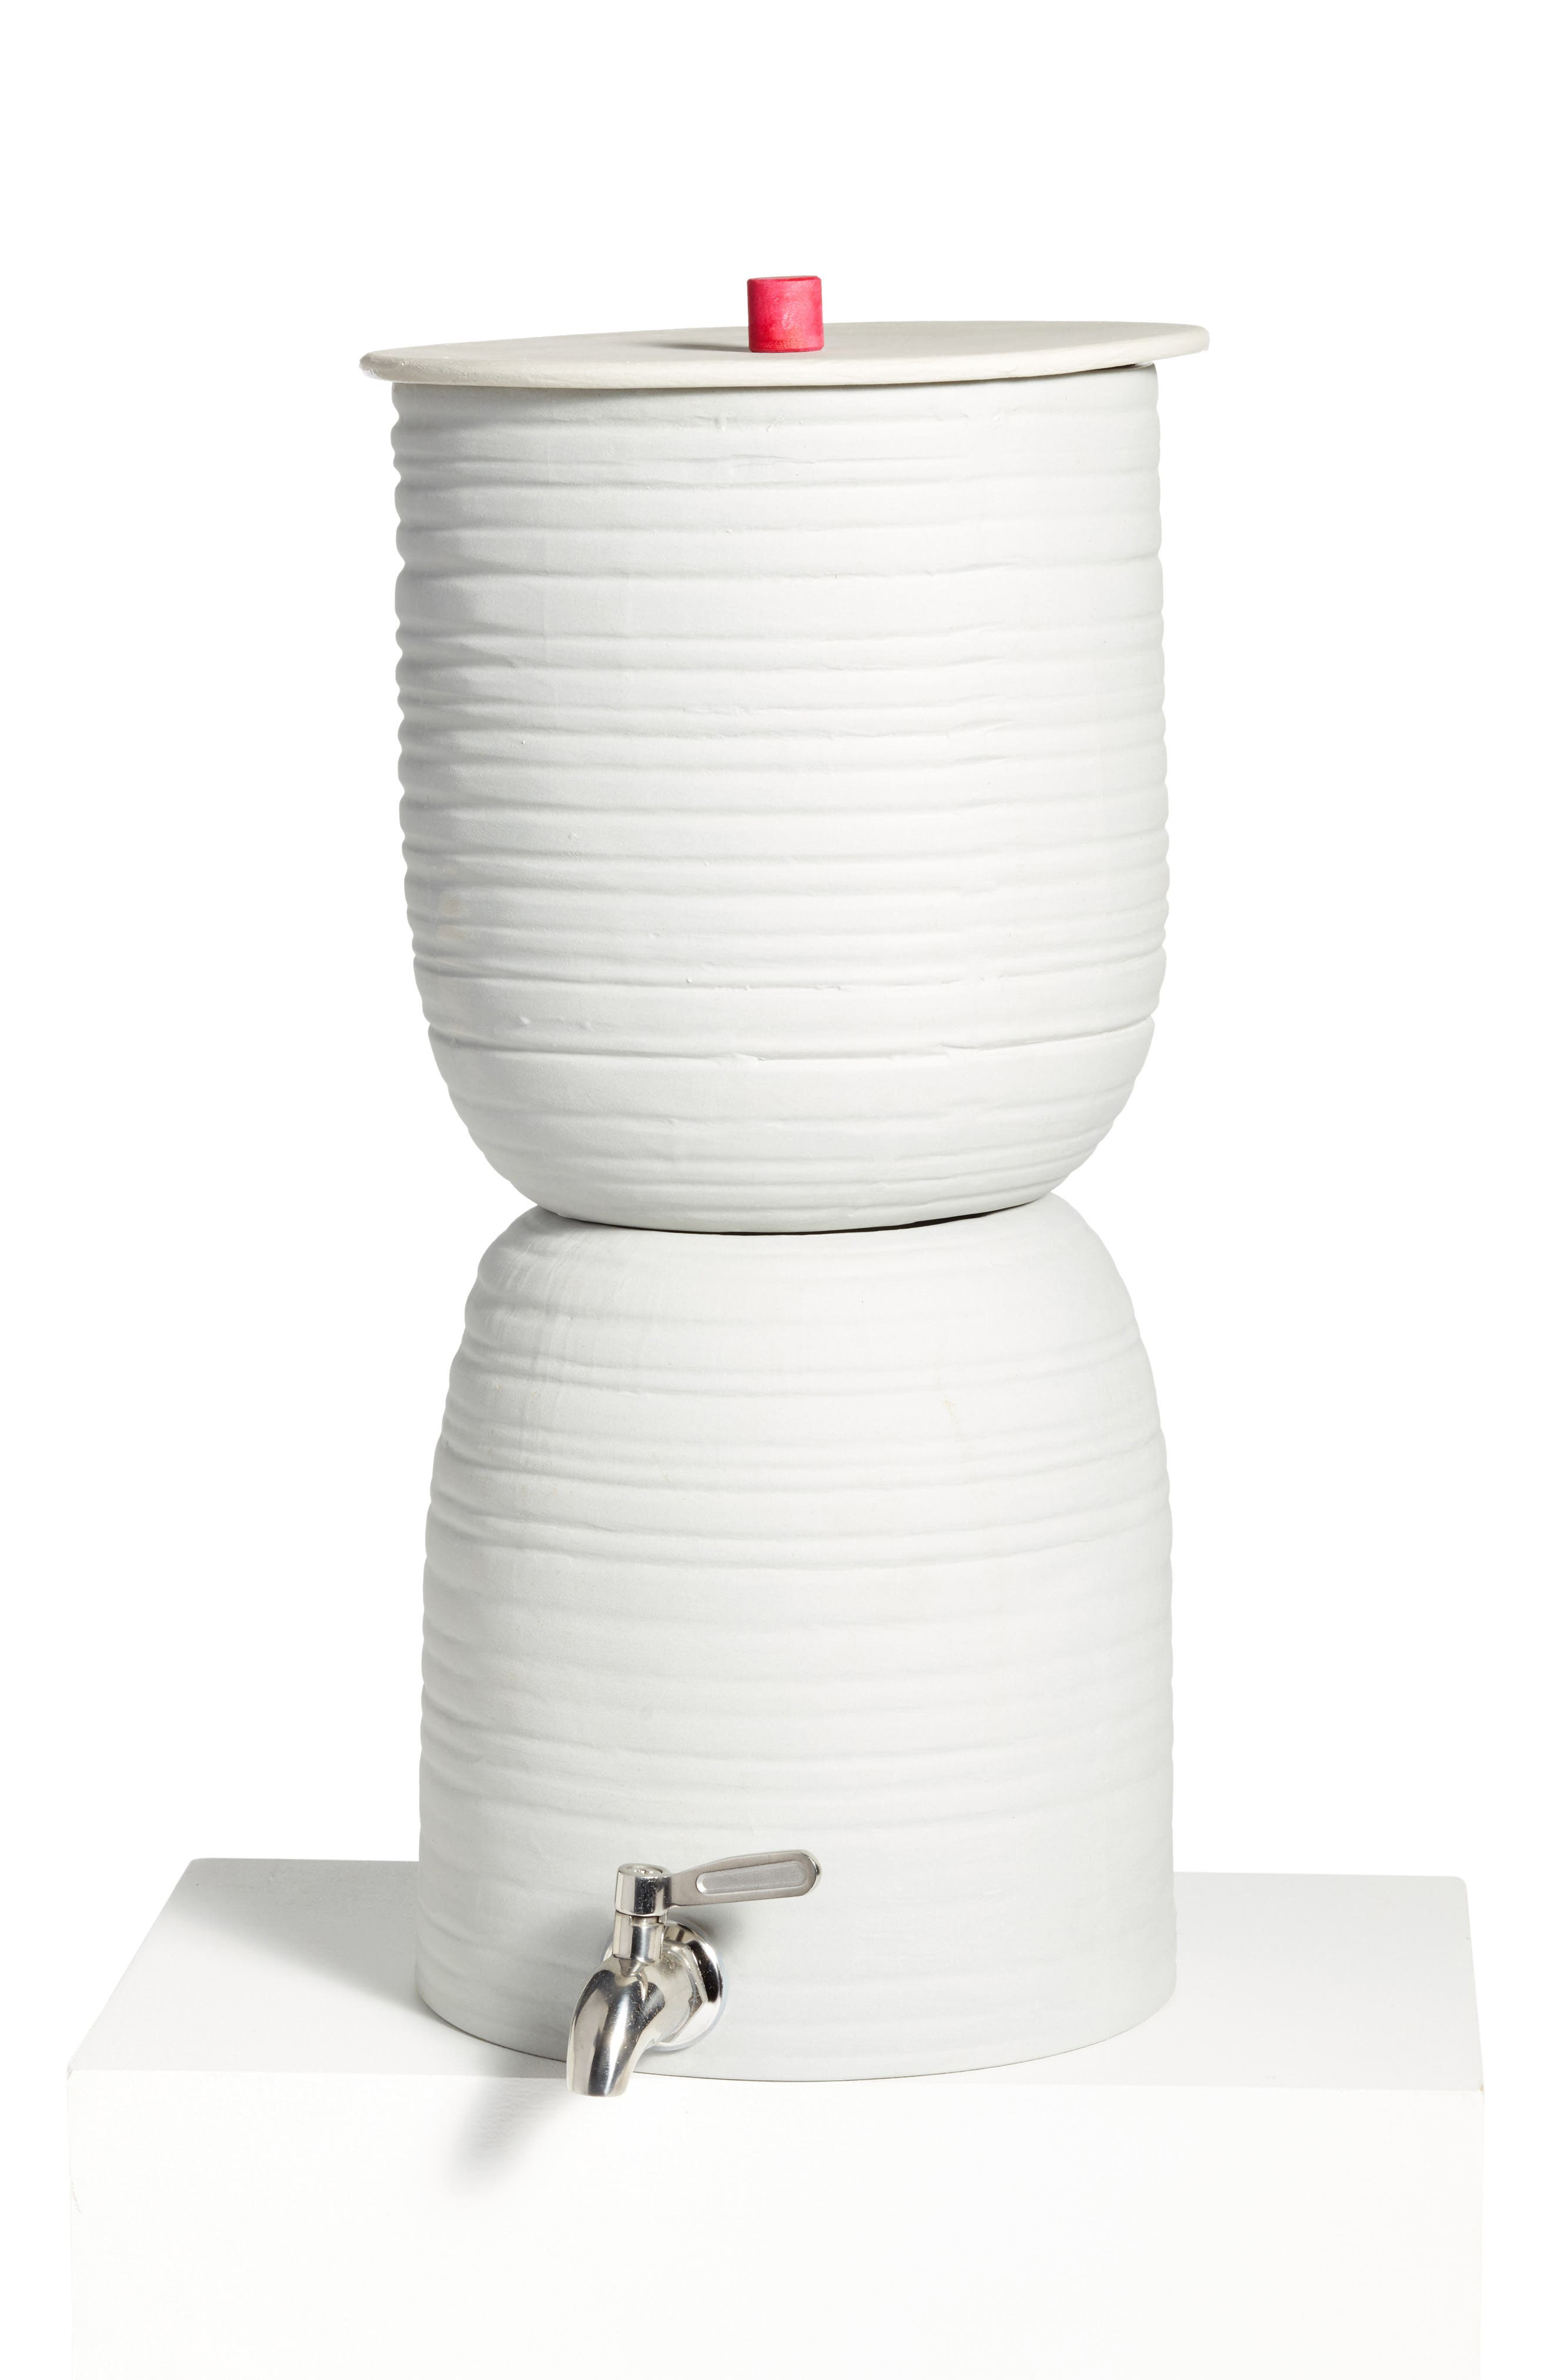 Wavy Porcelain Water Filter,                         Main,                         color, White